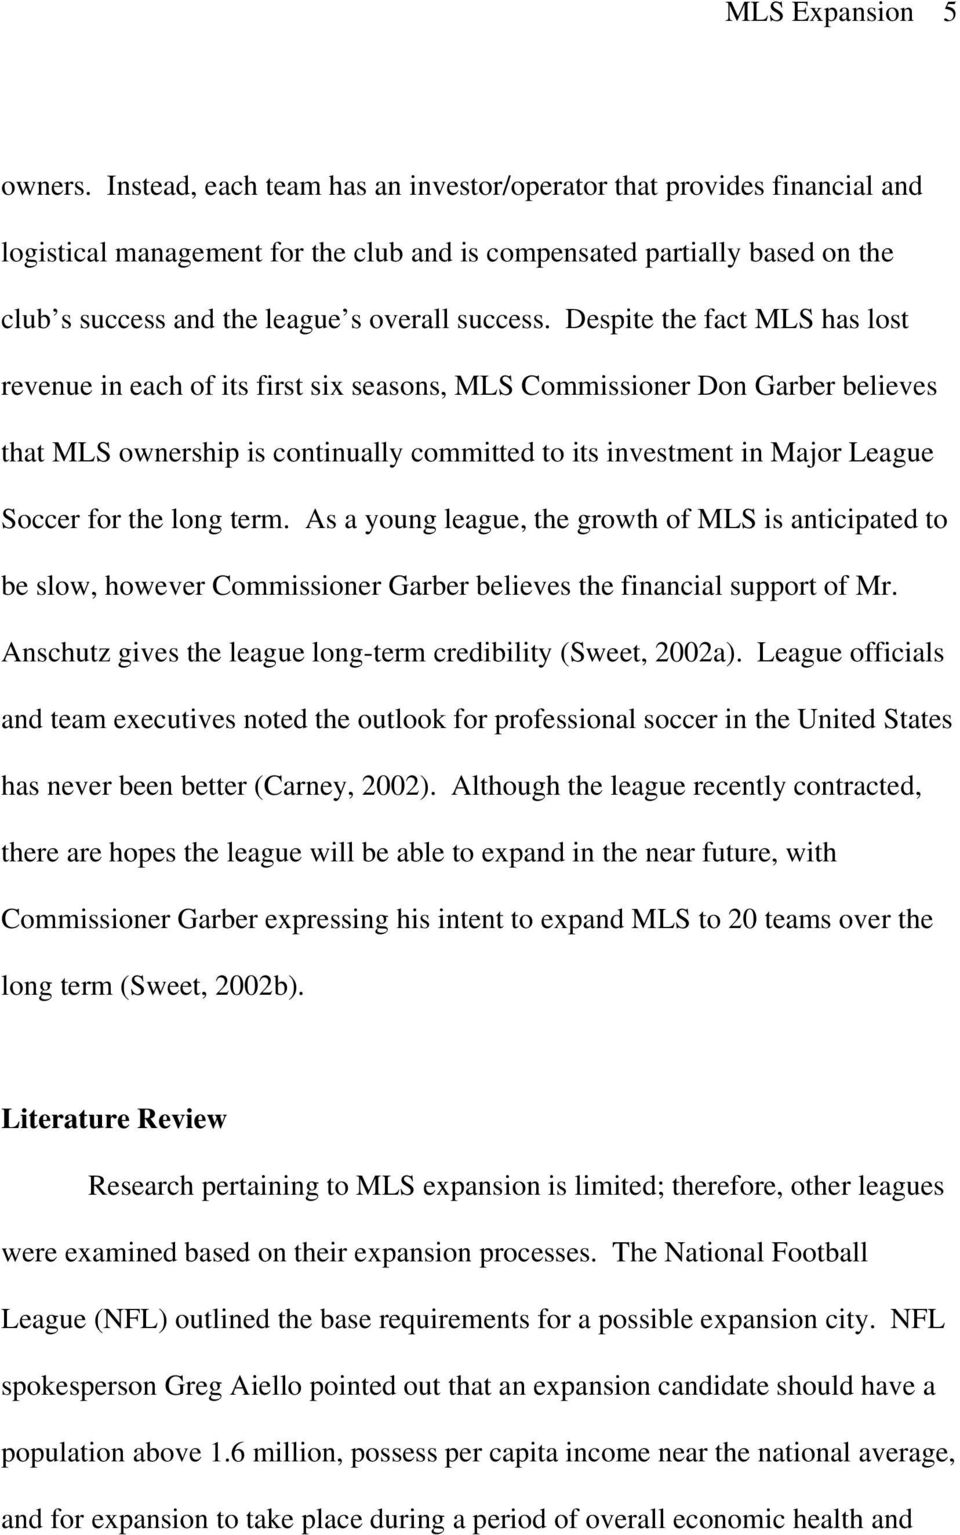 Despite the fact MLS has lost revenue in each of its first six seasons, MLS Commissioner Don Garber believes that MLS ownership is continually committed to its investment in Major League Soccer for